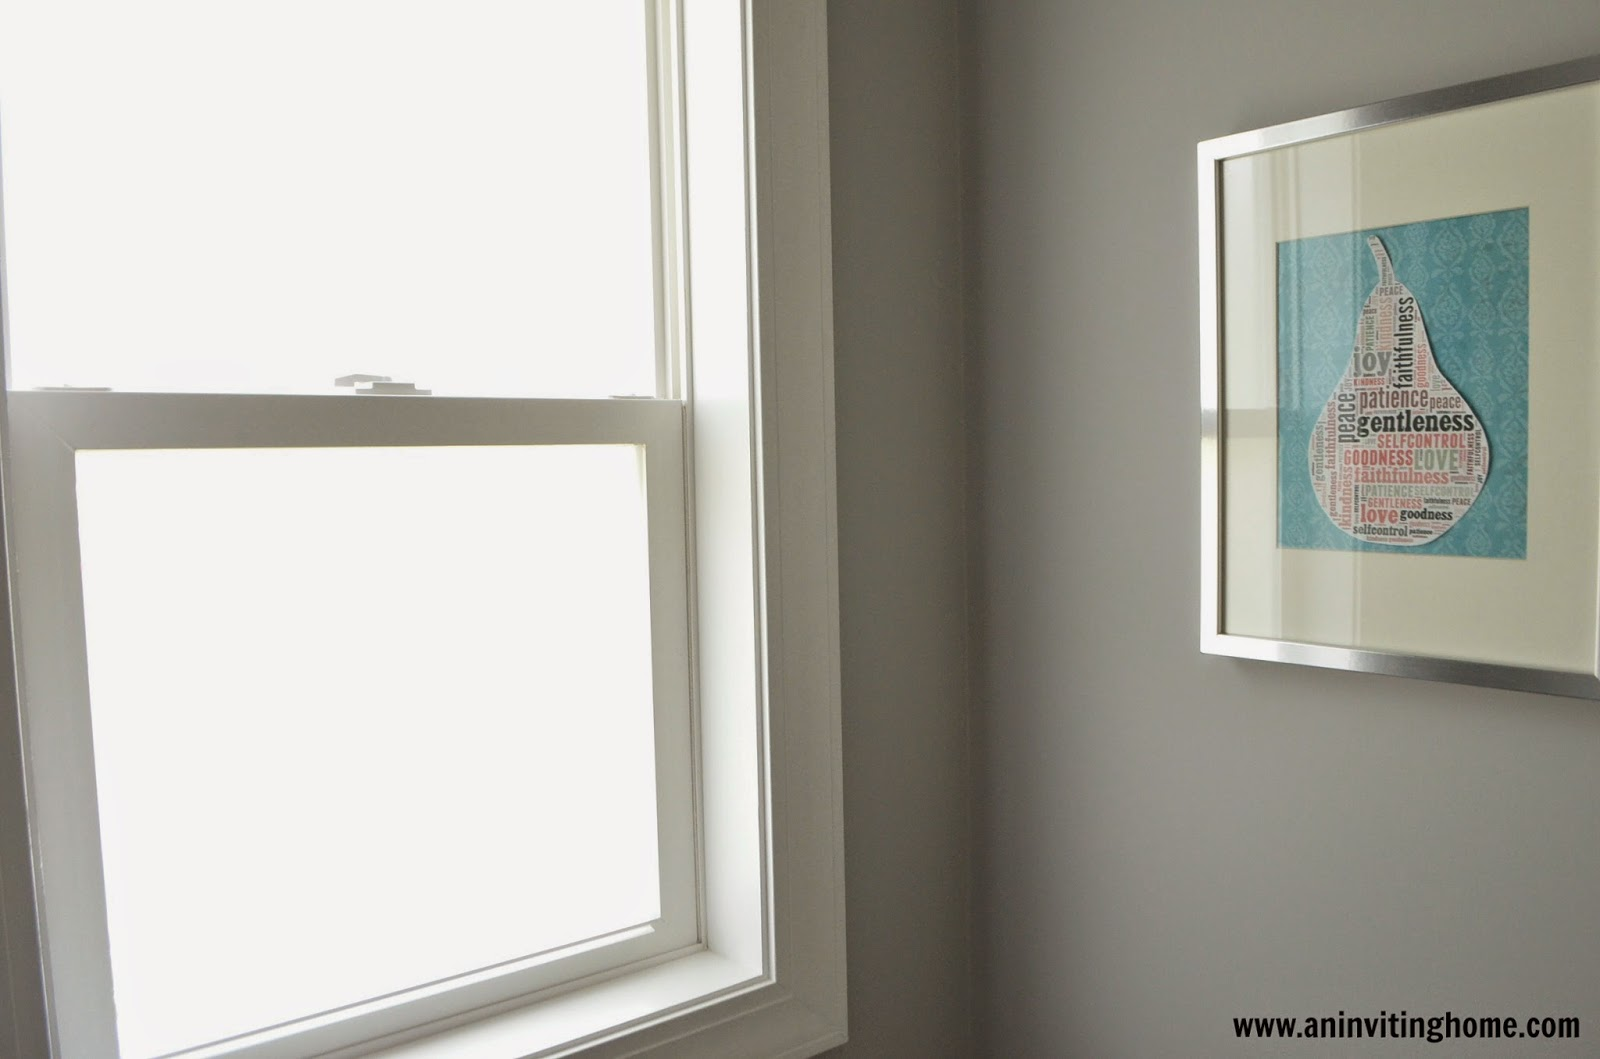 installing privacy film in the bathroom window